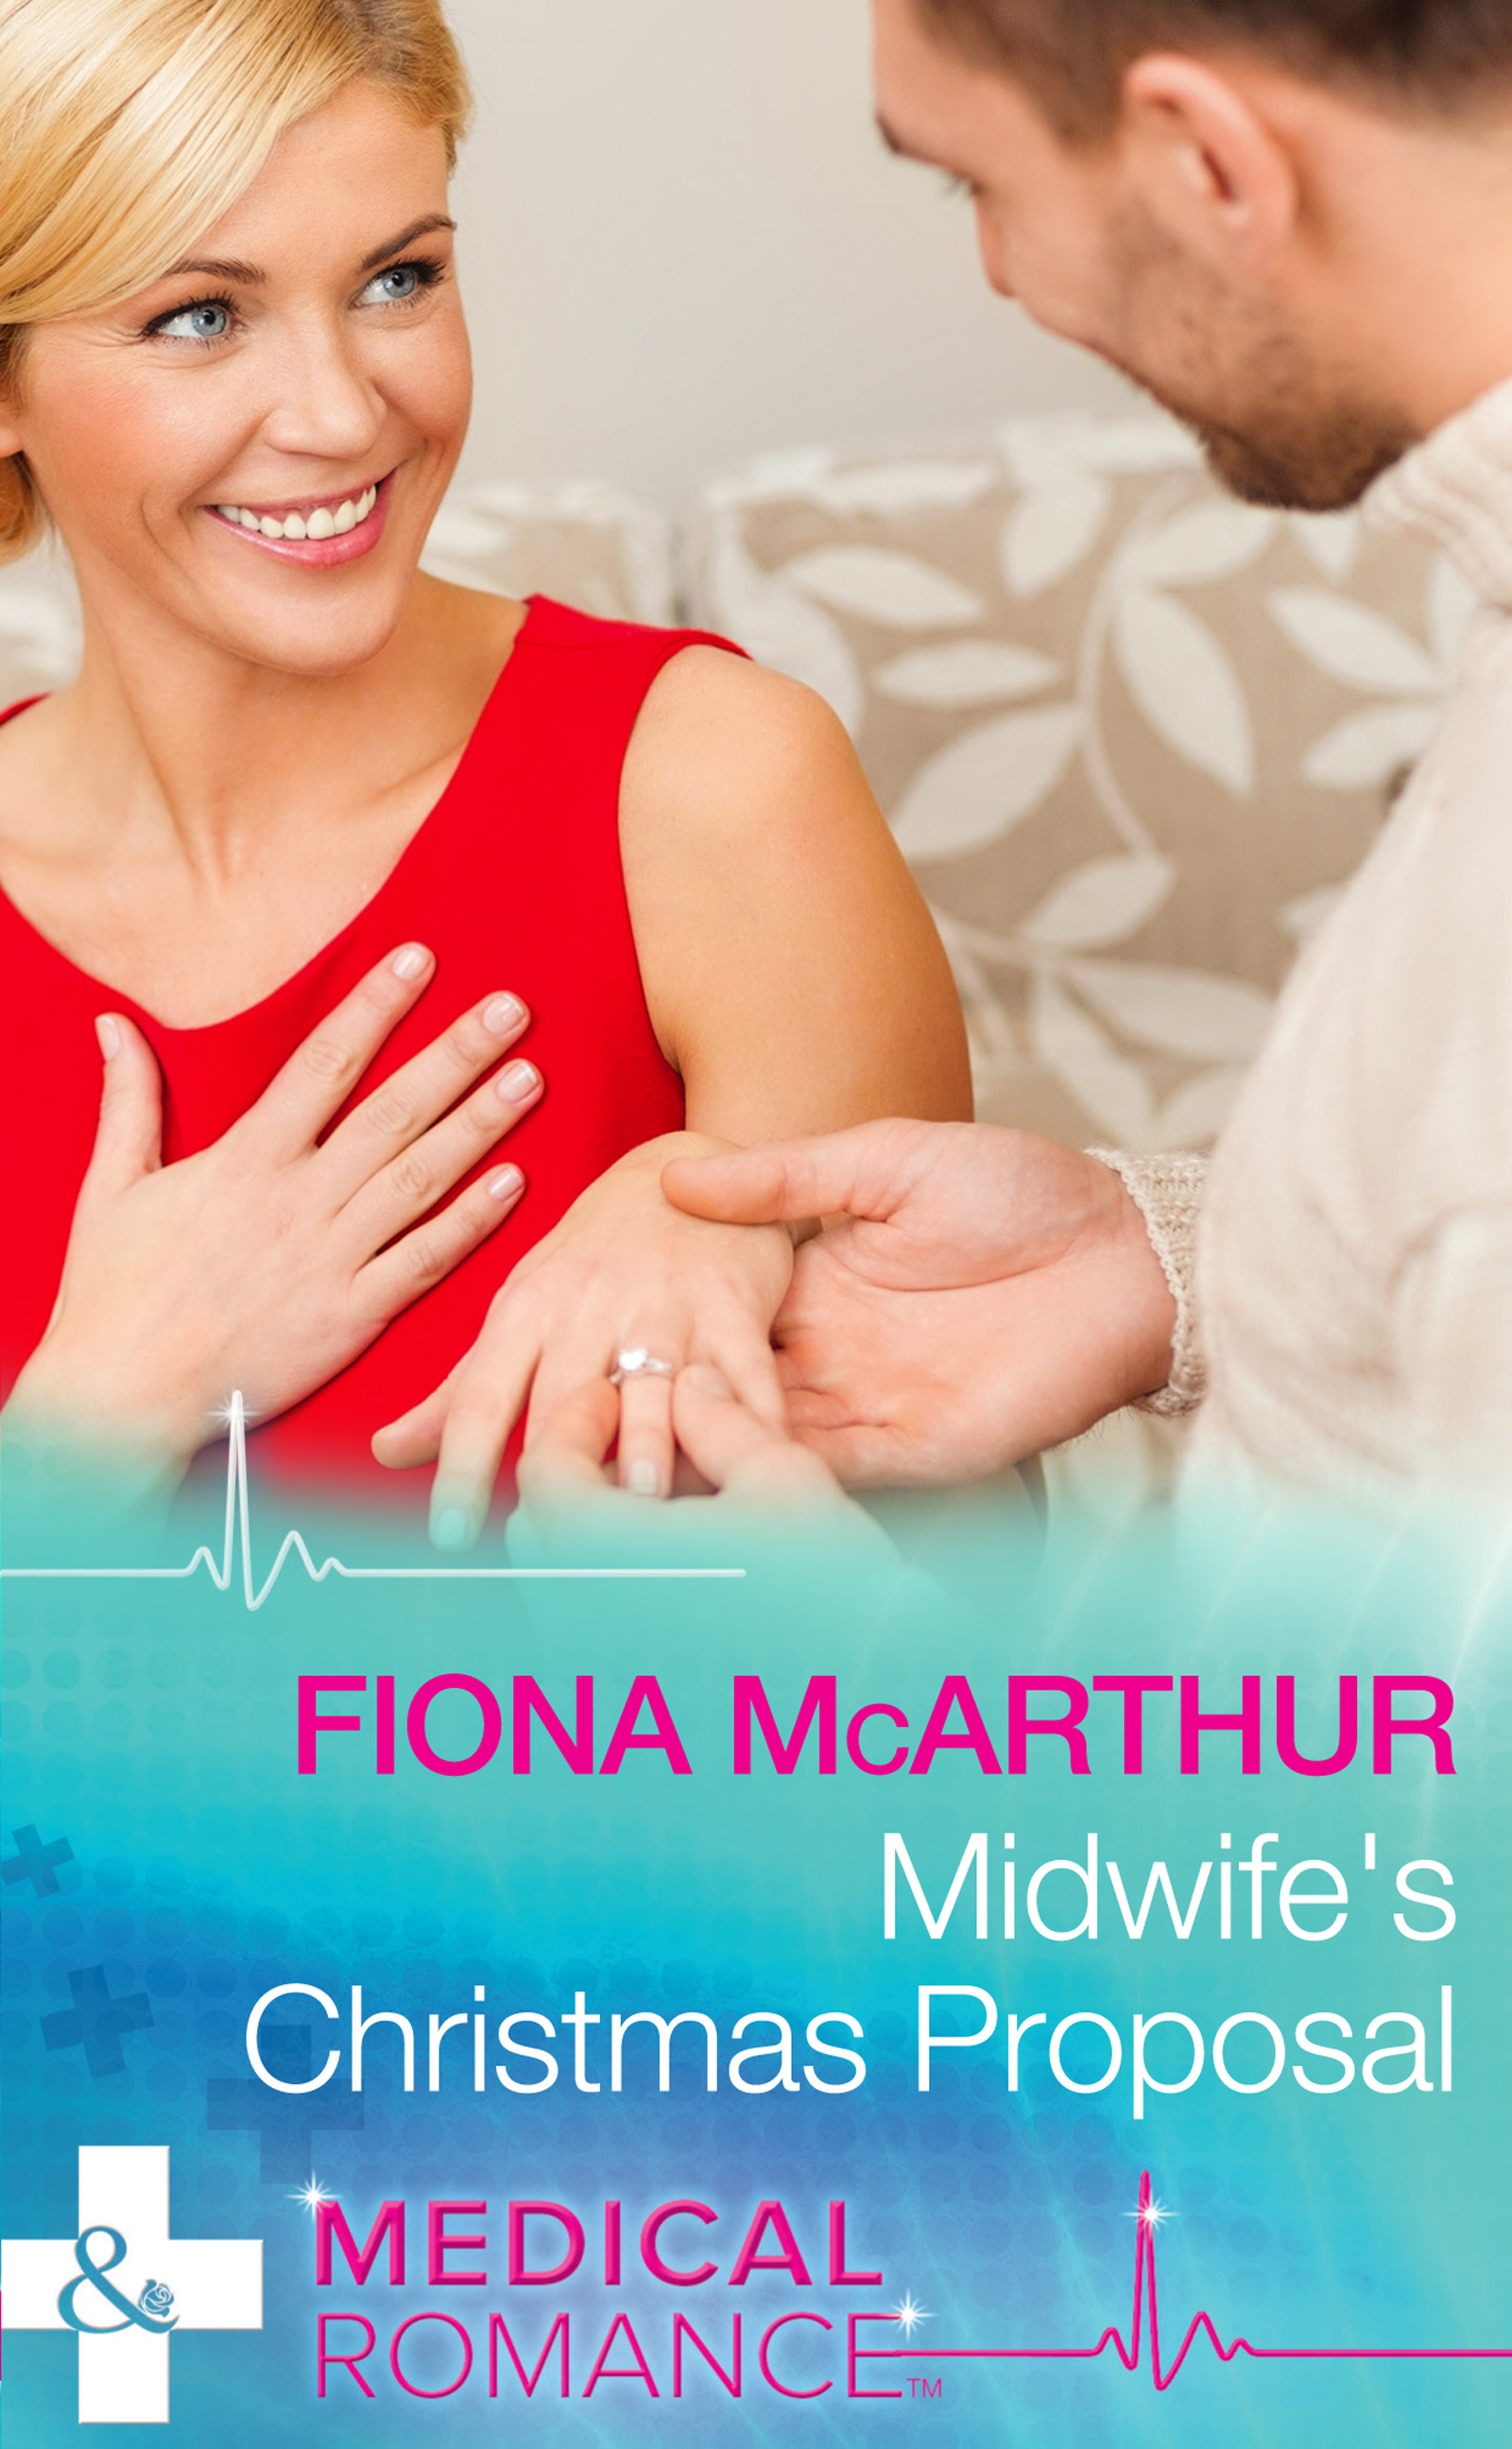 Midwife's Christmas Proposal (Mills & Boon Medical) (Christmas in Lyrebird Lake - Book 1)